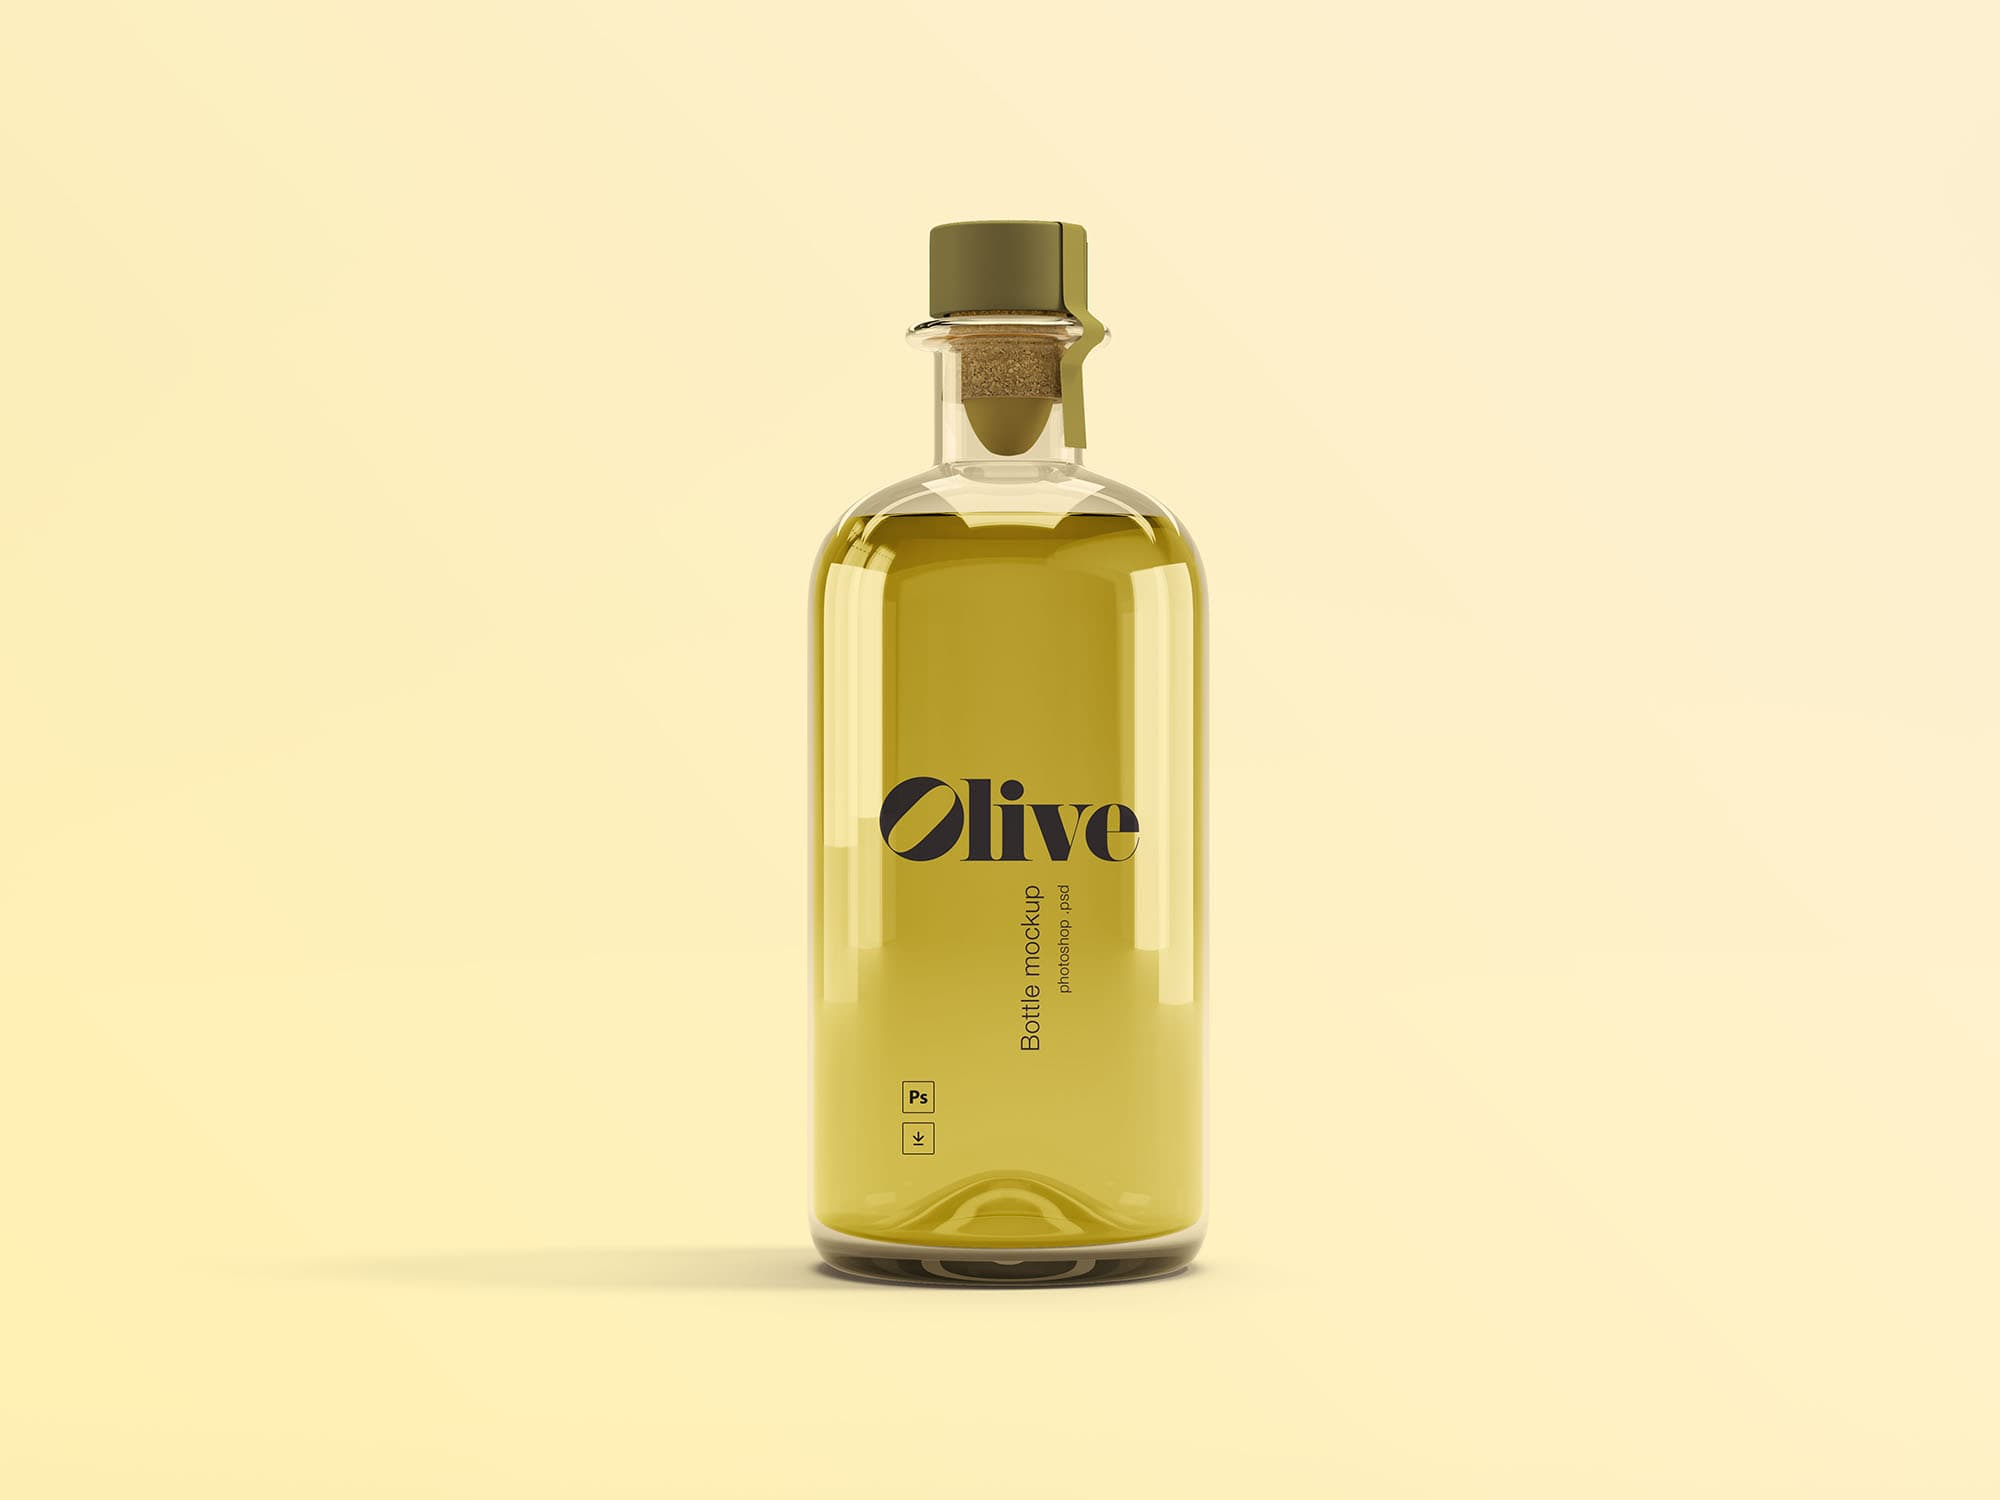 Olive Oil Bottle Free Mockup